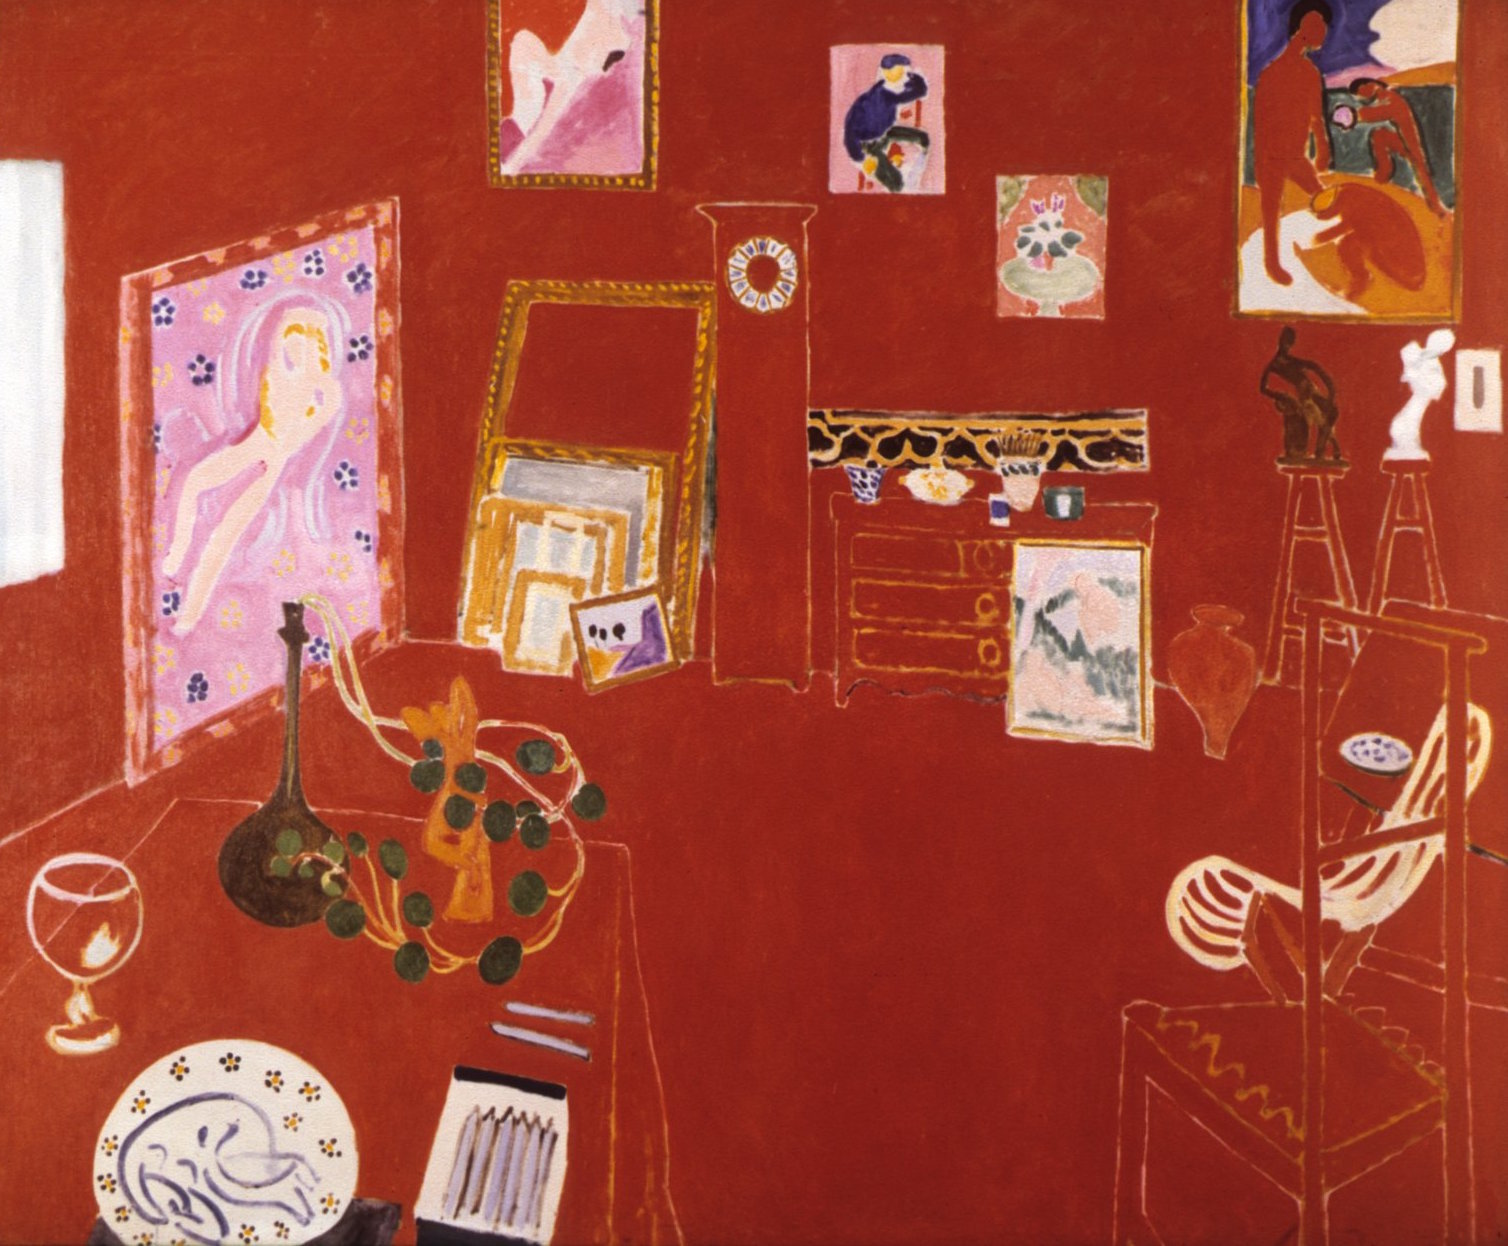 Henri Matisse, The Red Studio, 1911, 71 x 86 inches